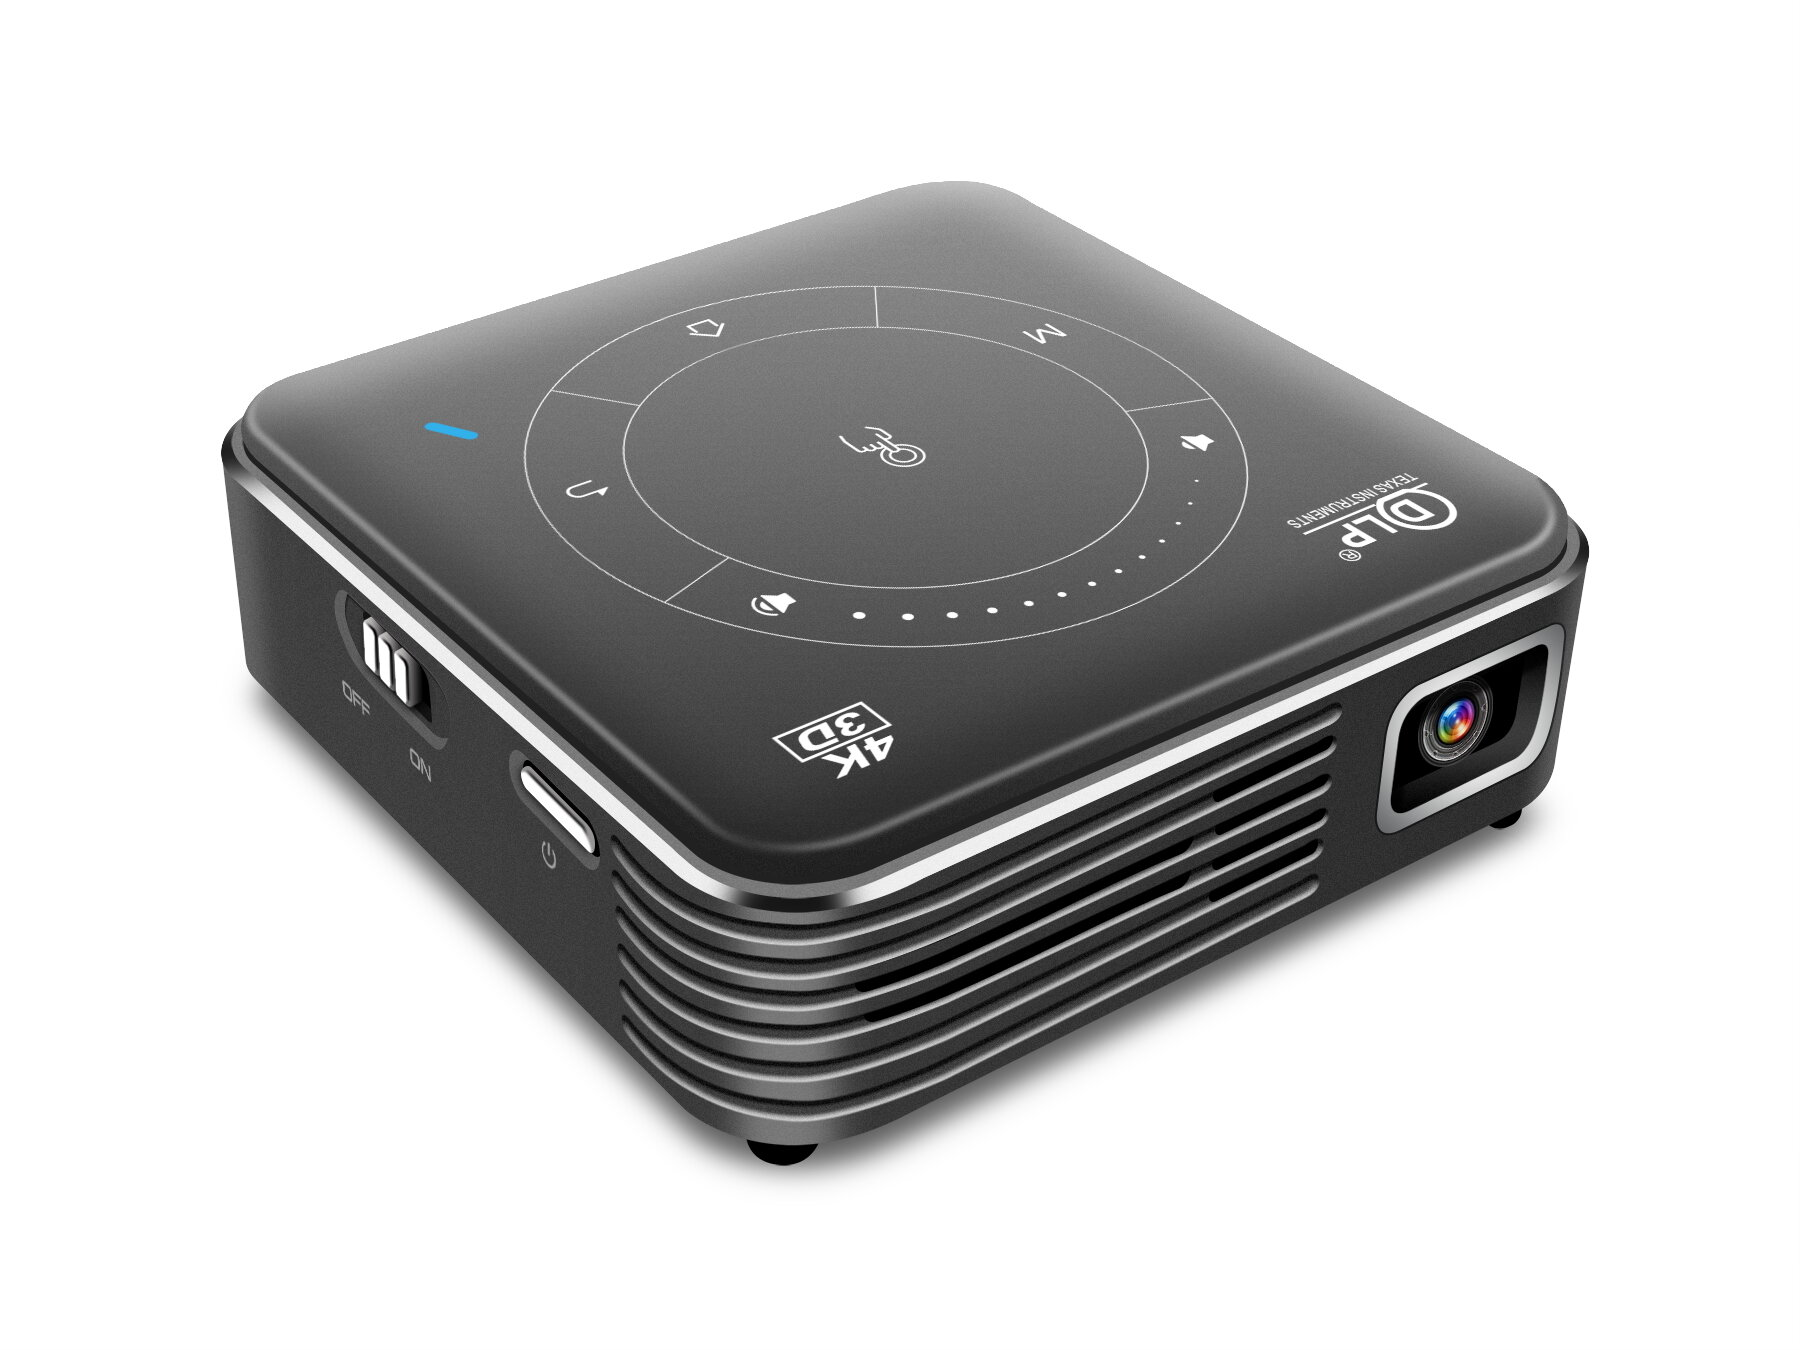 Wholesale P11 DLP Mini Projector Android 9.0 4GB+32GB 1000 Lumens Smart Pocket 3D Support Miracast Wi-Fi Home Video Projector Beamer